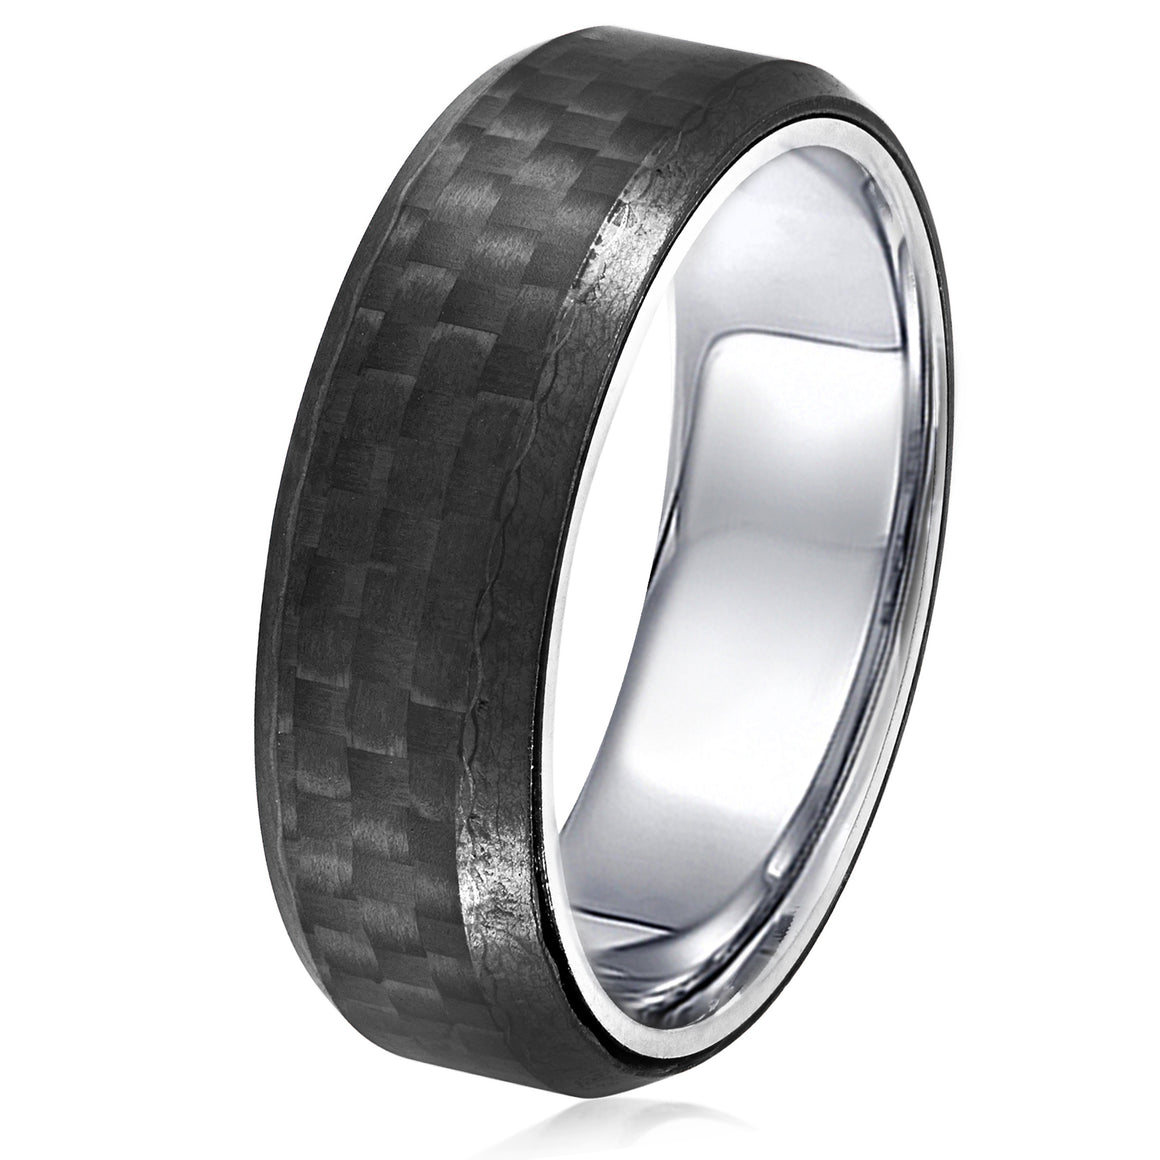 Crucible Men's Stainless Steel Carbon Fiber Beveled Comfort Fit Ring